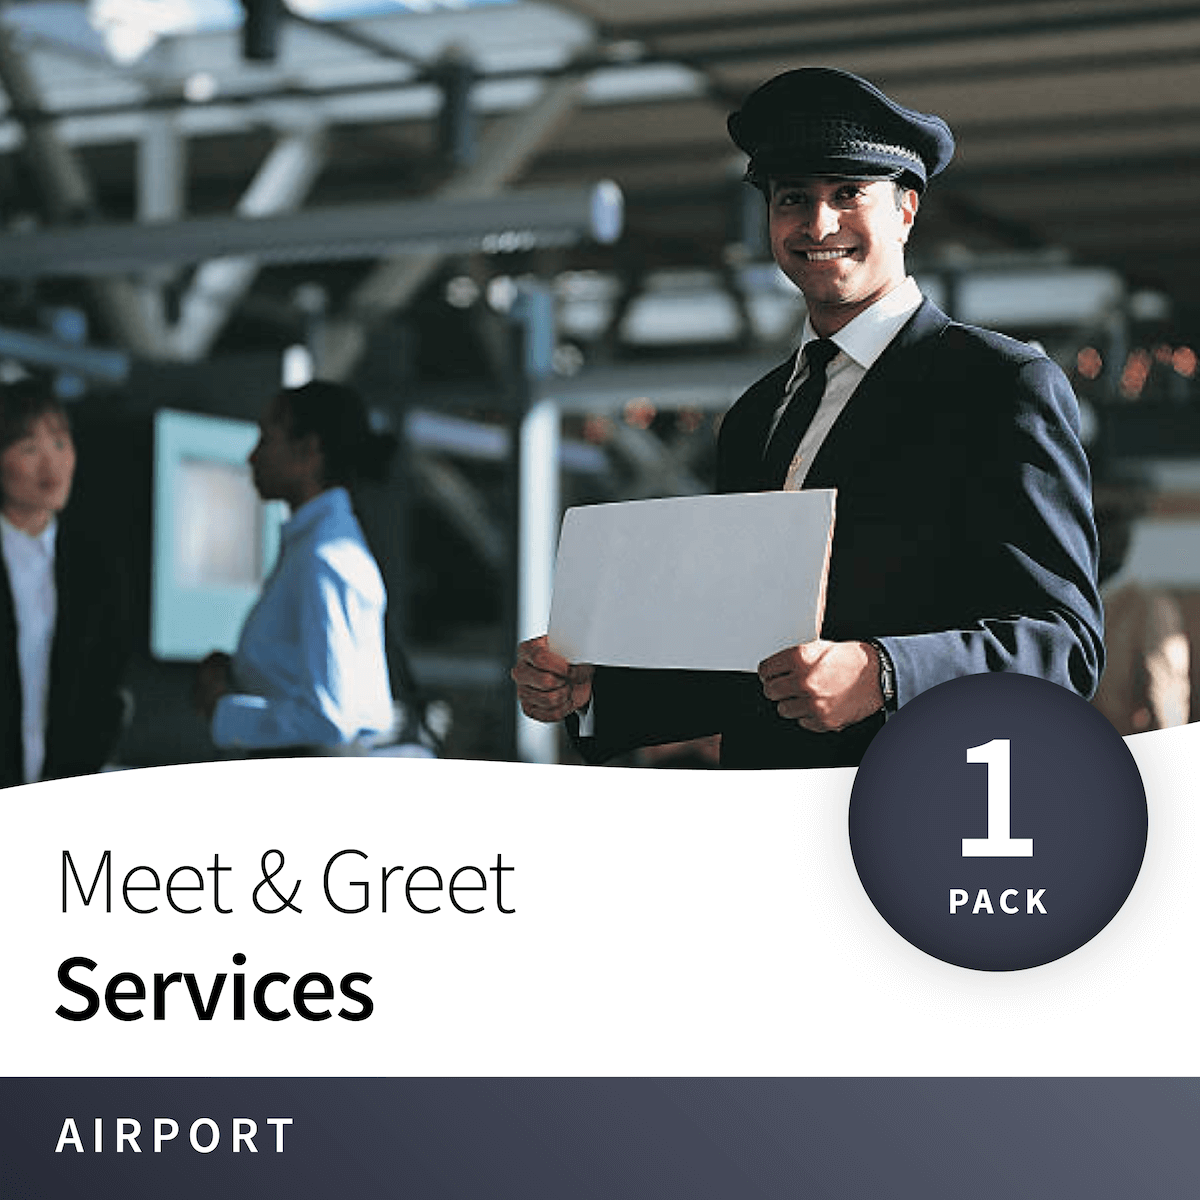 Meet & Greet Services 3